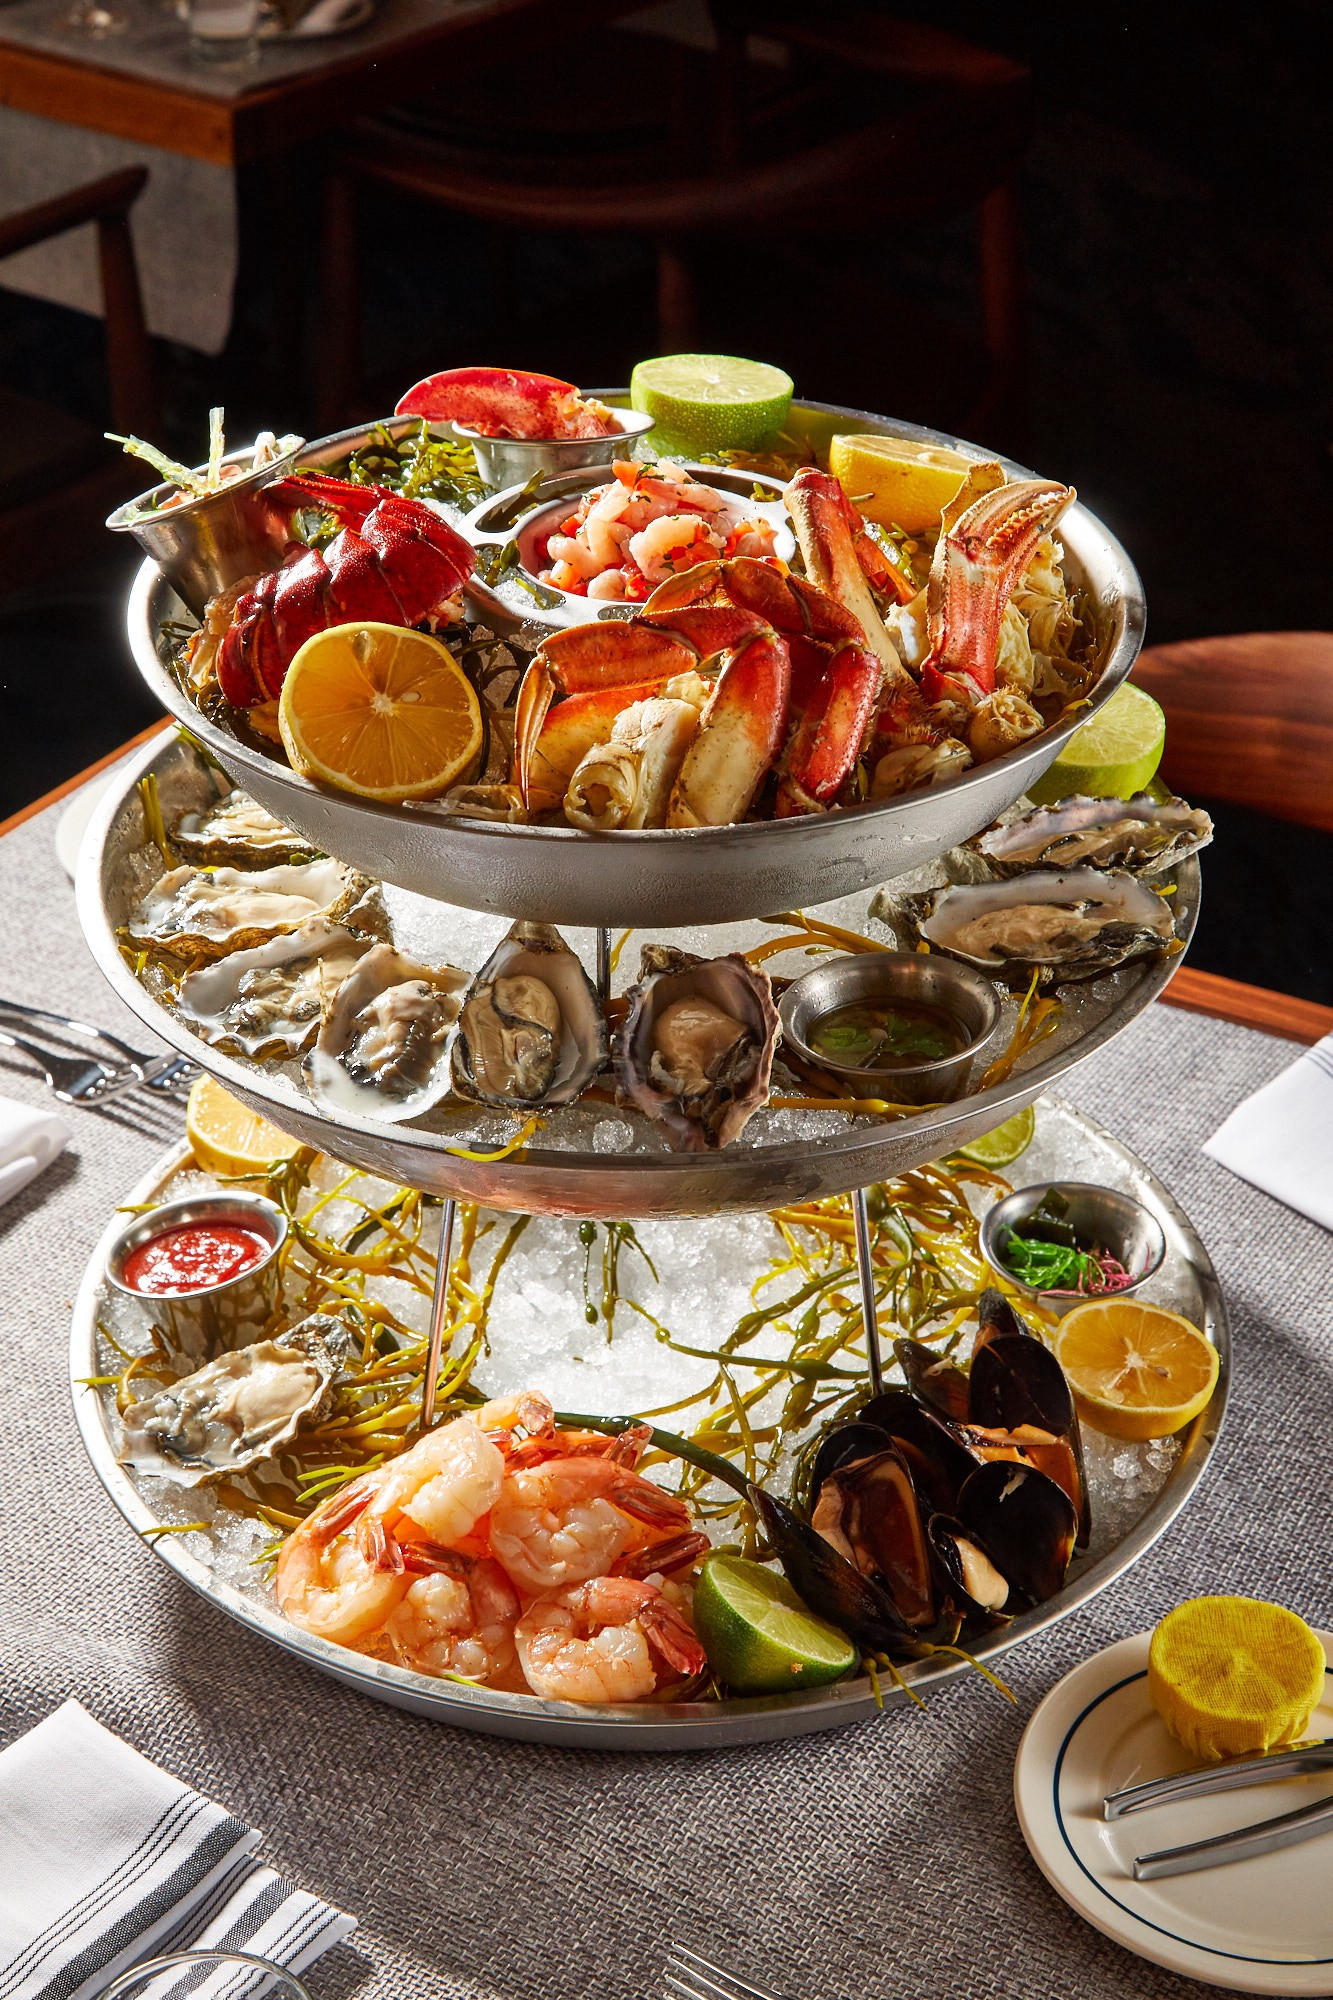 As Well There Are Many Restaurants Available In San Francisco But Now Let We Introduce You To The Grotto Sf Best Seafood And